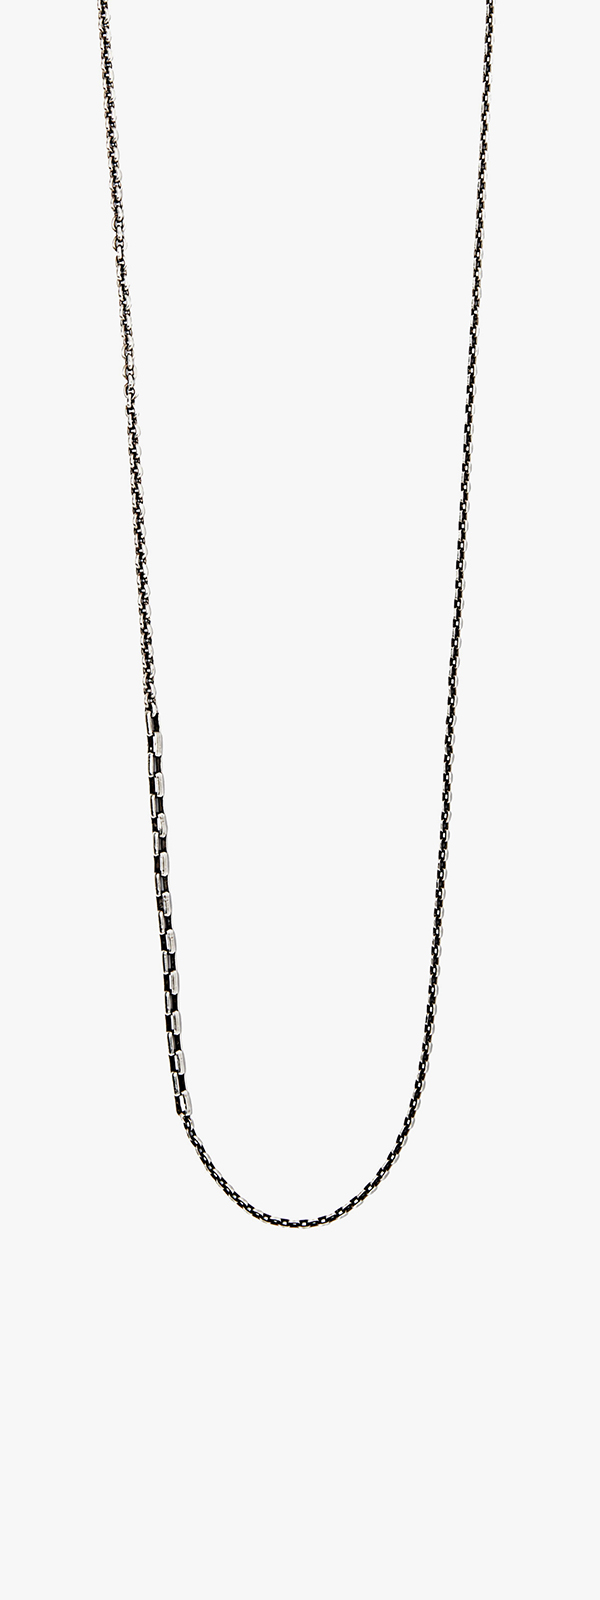 Image of Sterling Cable w/ Box Chain Necklace